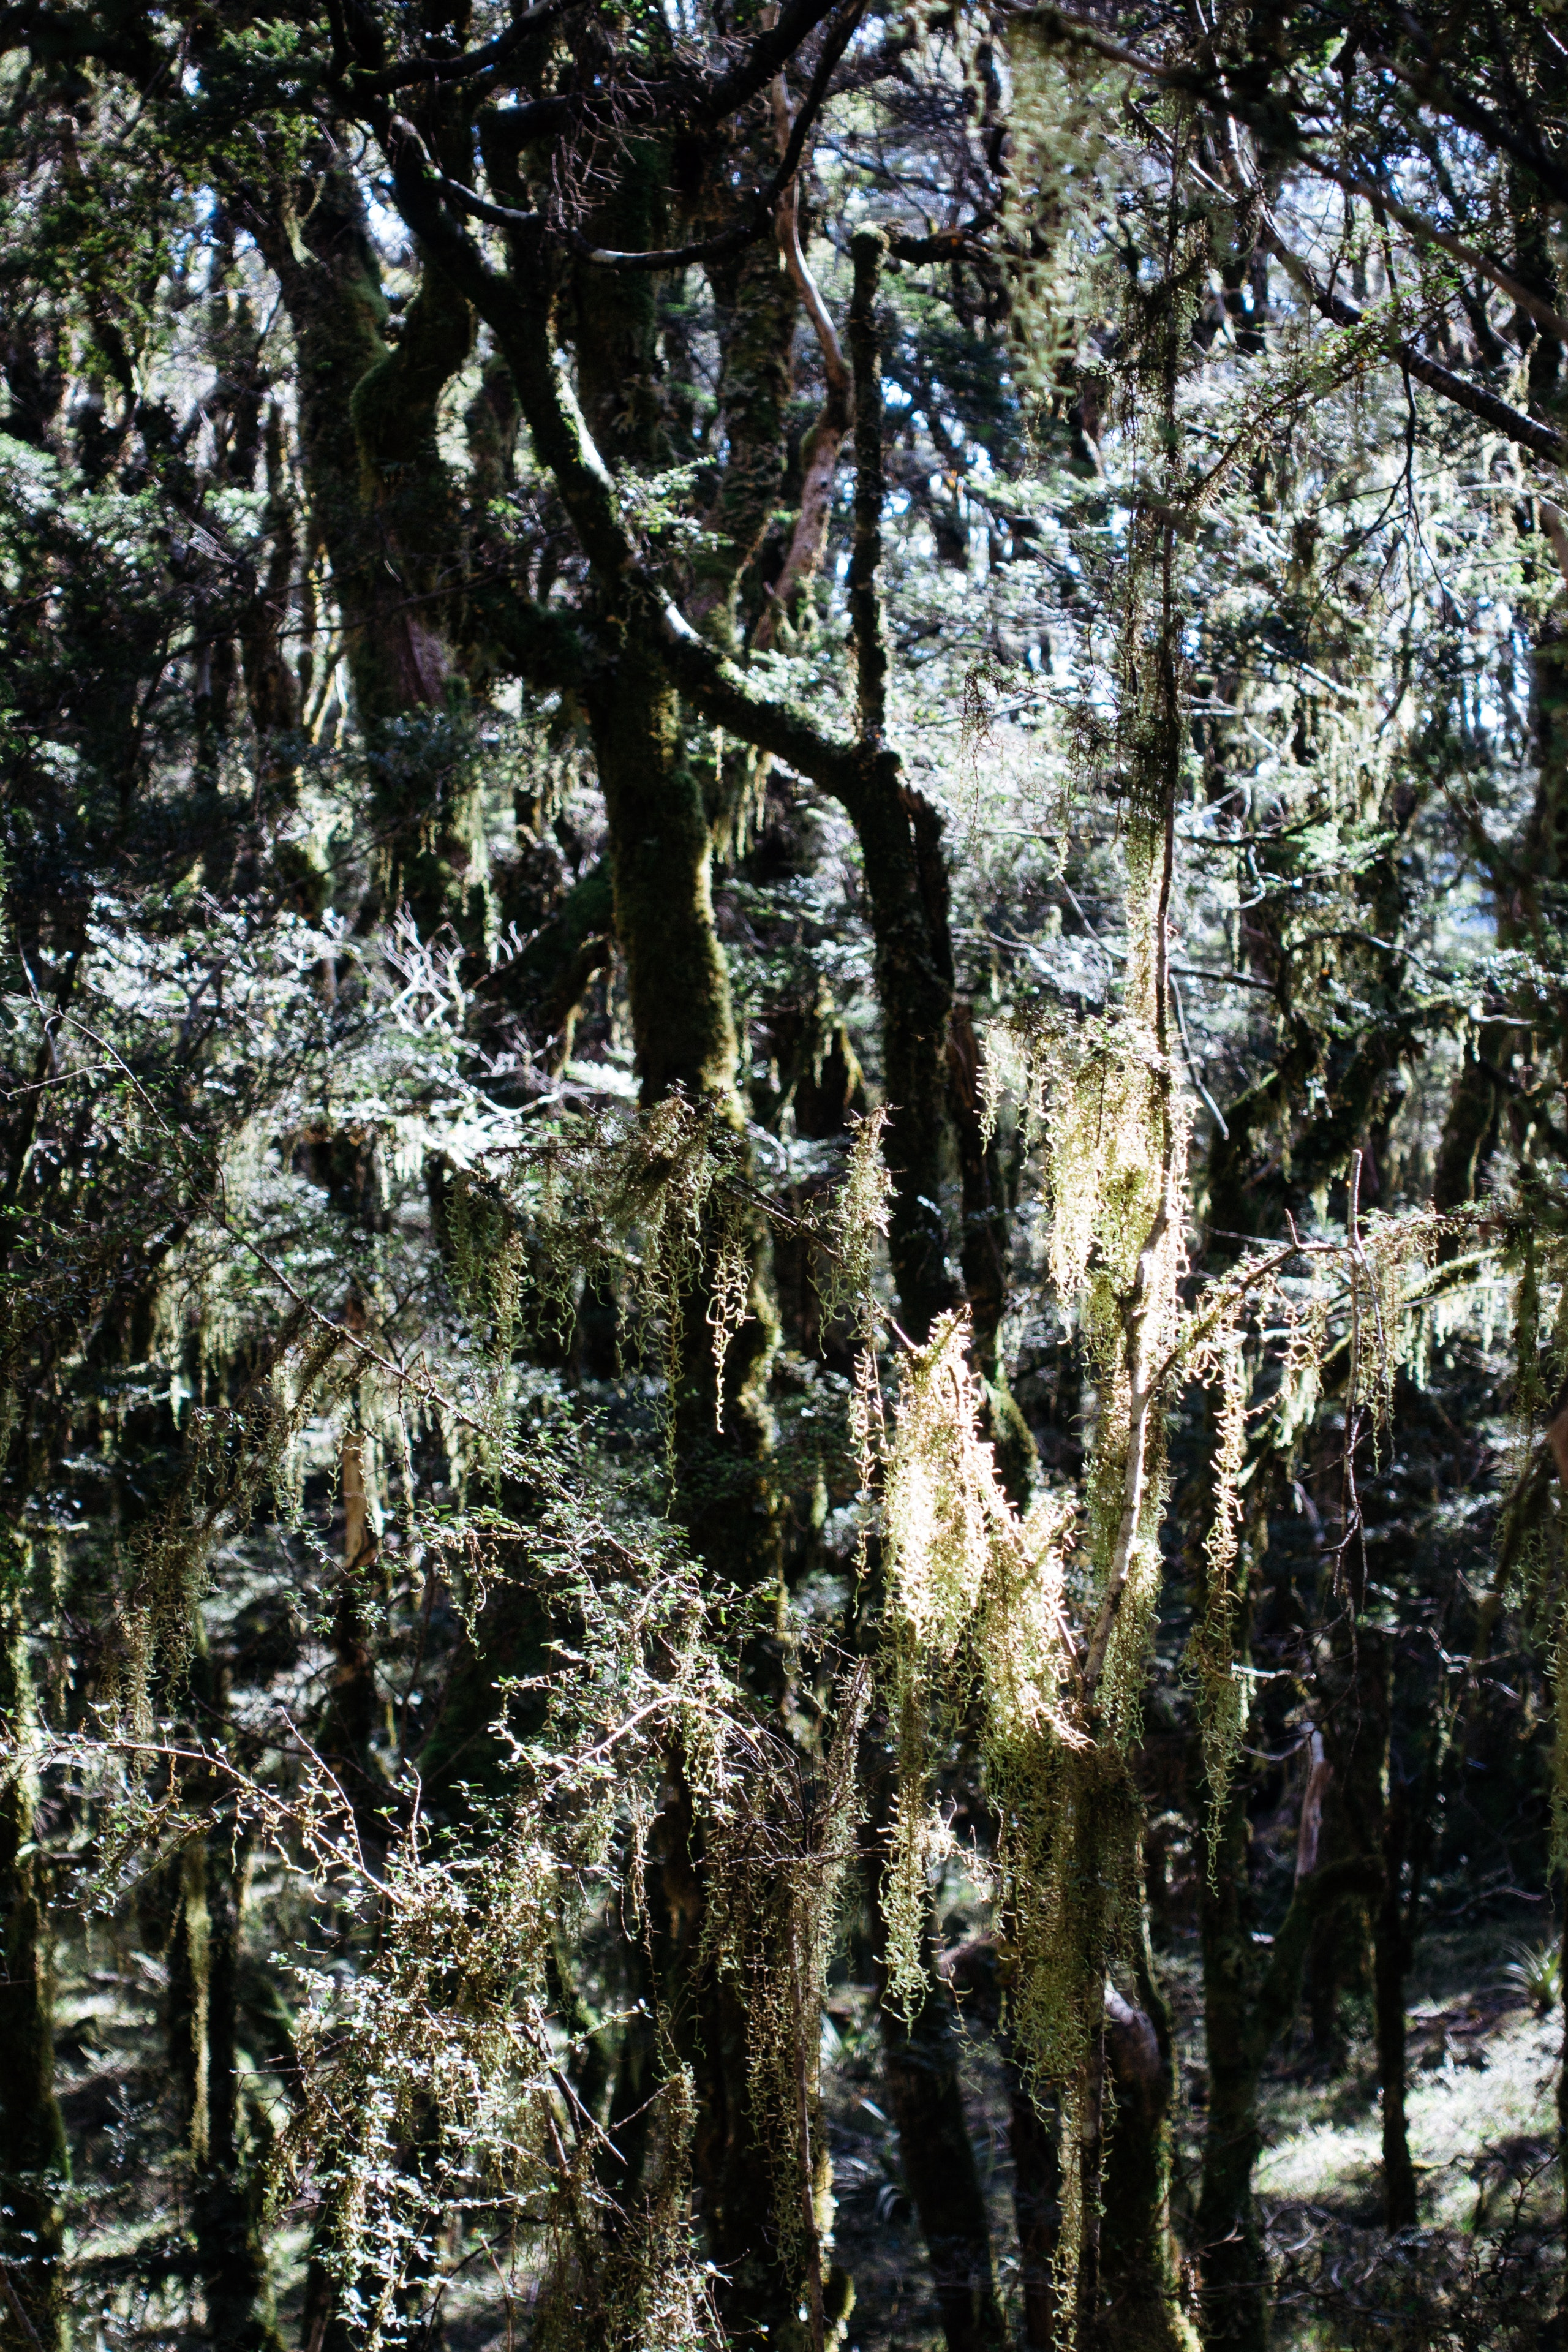 Inside the Enchanted Forest, moss hangs from trees